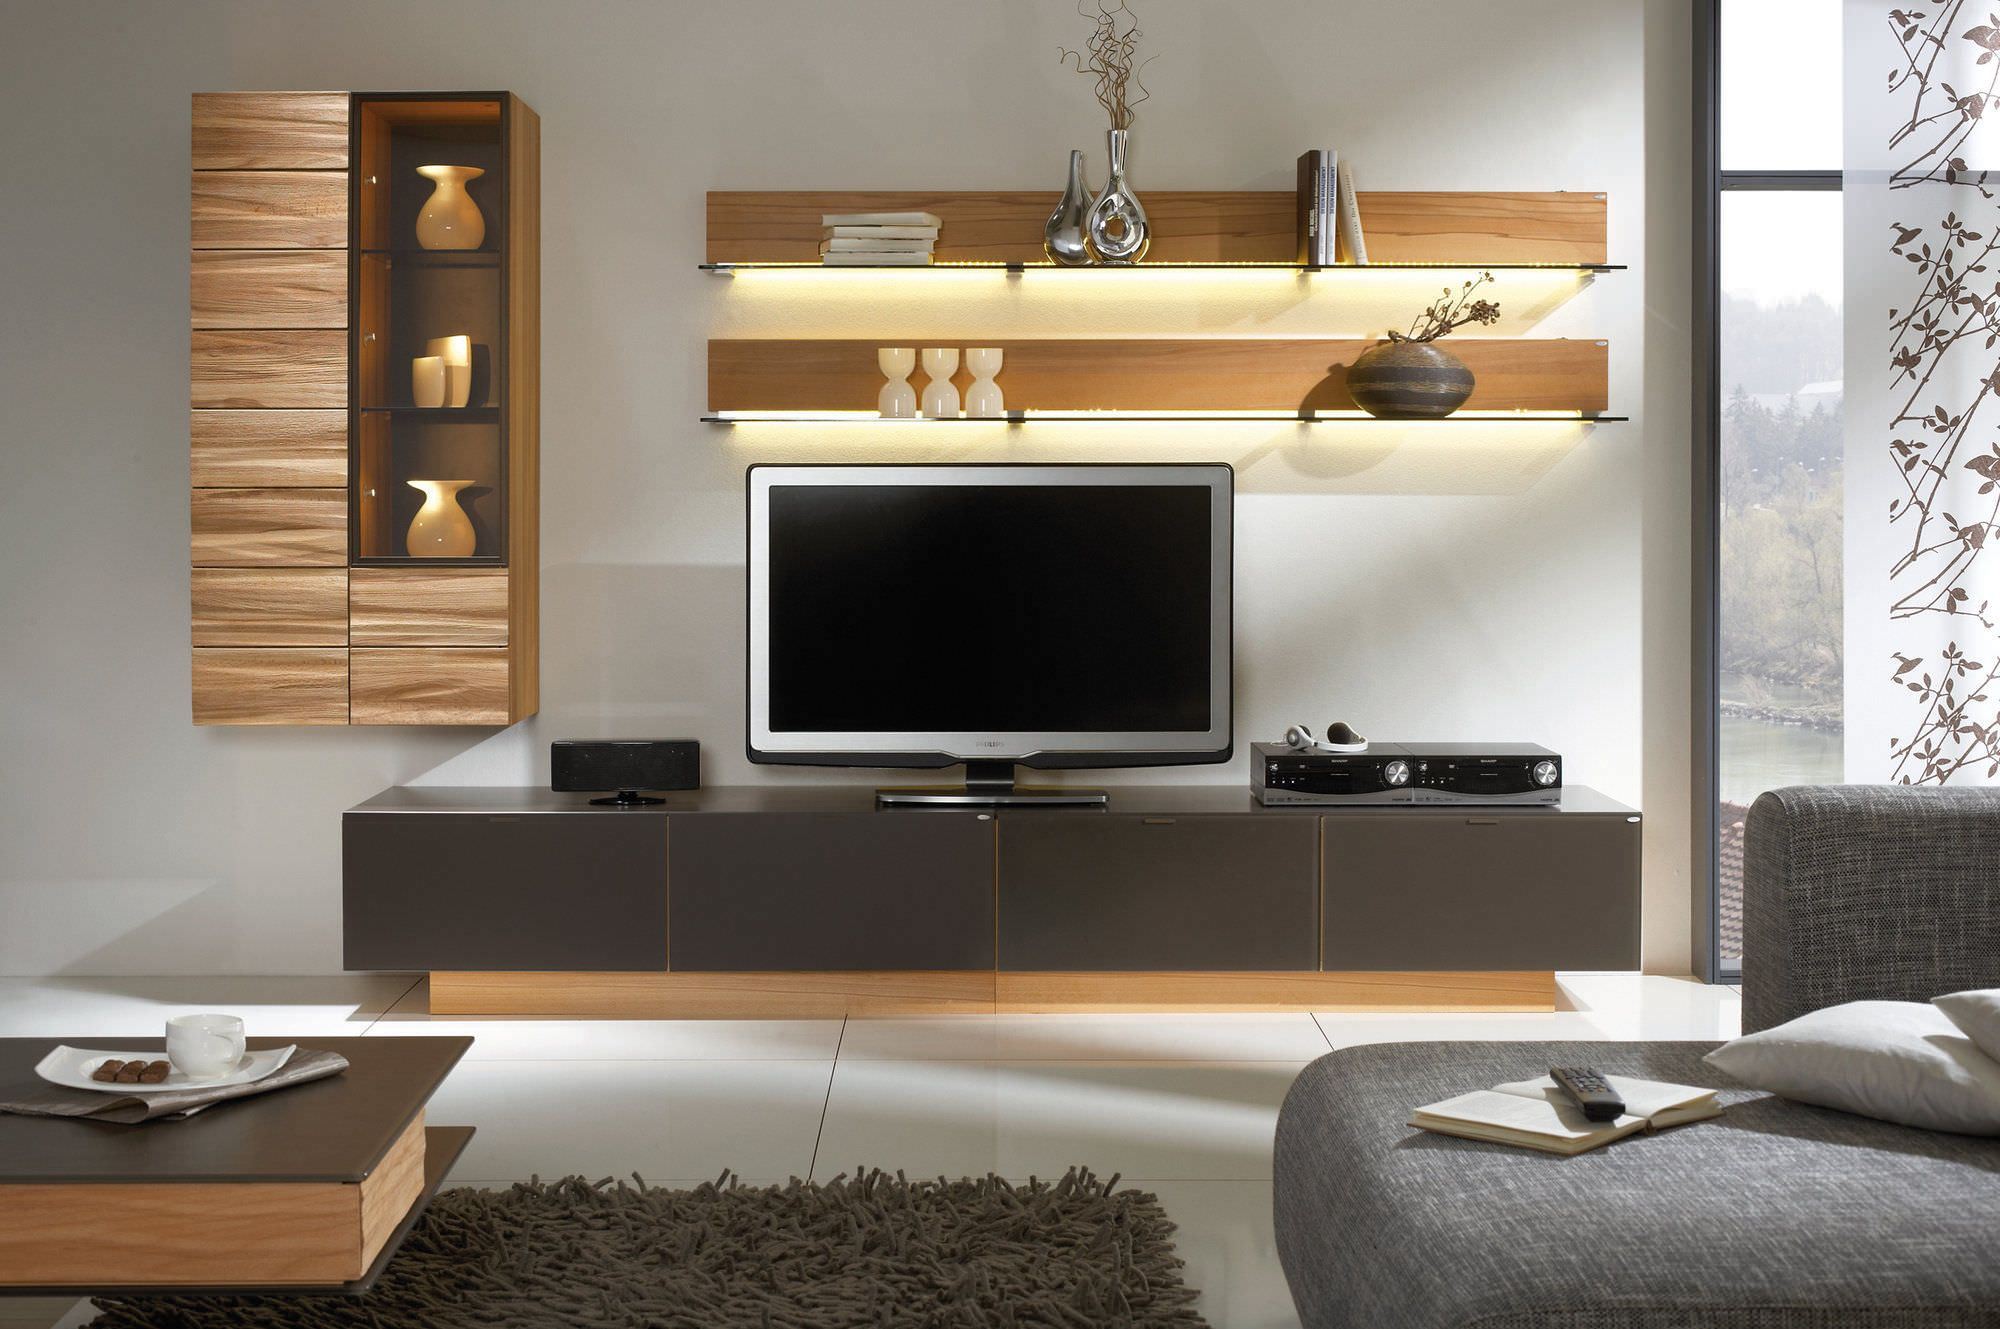 Awesome white brown wood glass cool design contemporary tv for Contemporary style furniture